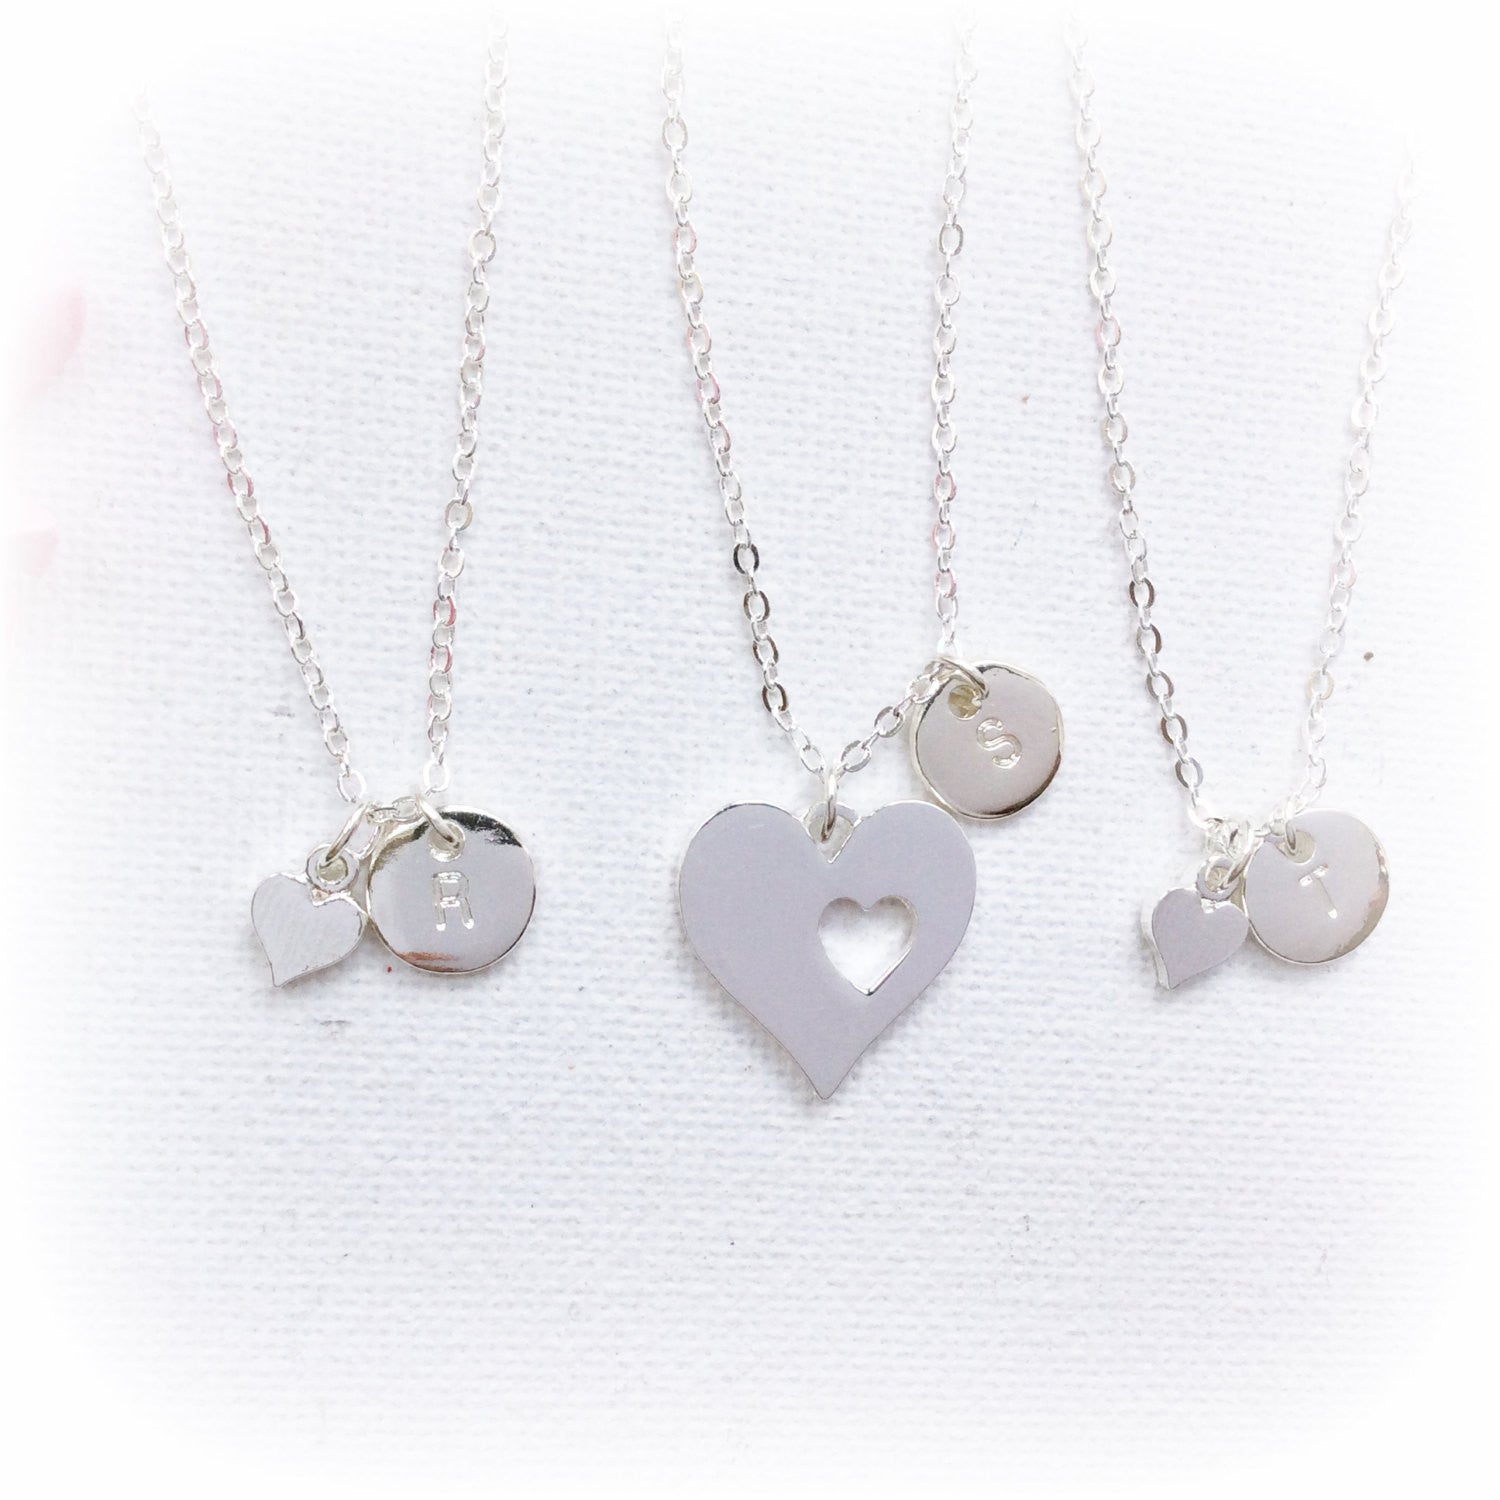 Silver heart Mother daughter jewelry, mother necklace, new mom gift, two heart cutout necklaces for mother and daughter,SFMDHNI1x2 , Jewelry - Statement Made Jewelry, Statement Made Jewellery  - 1